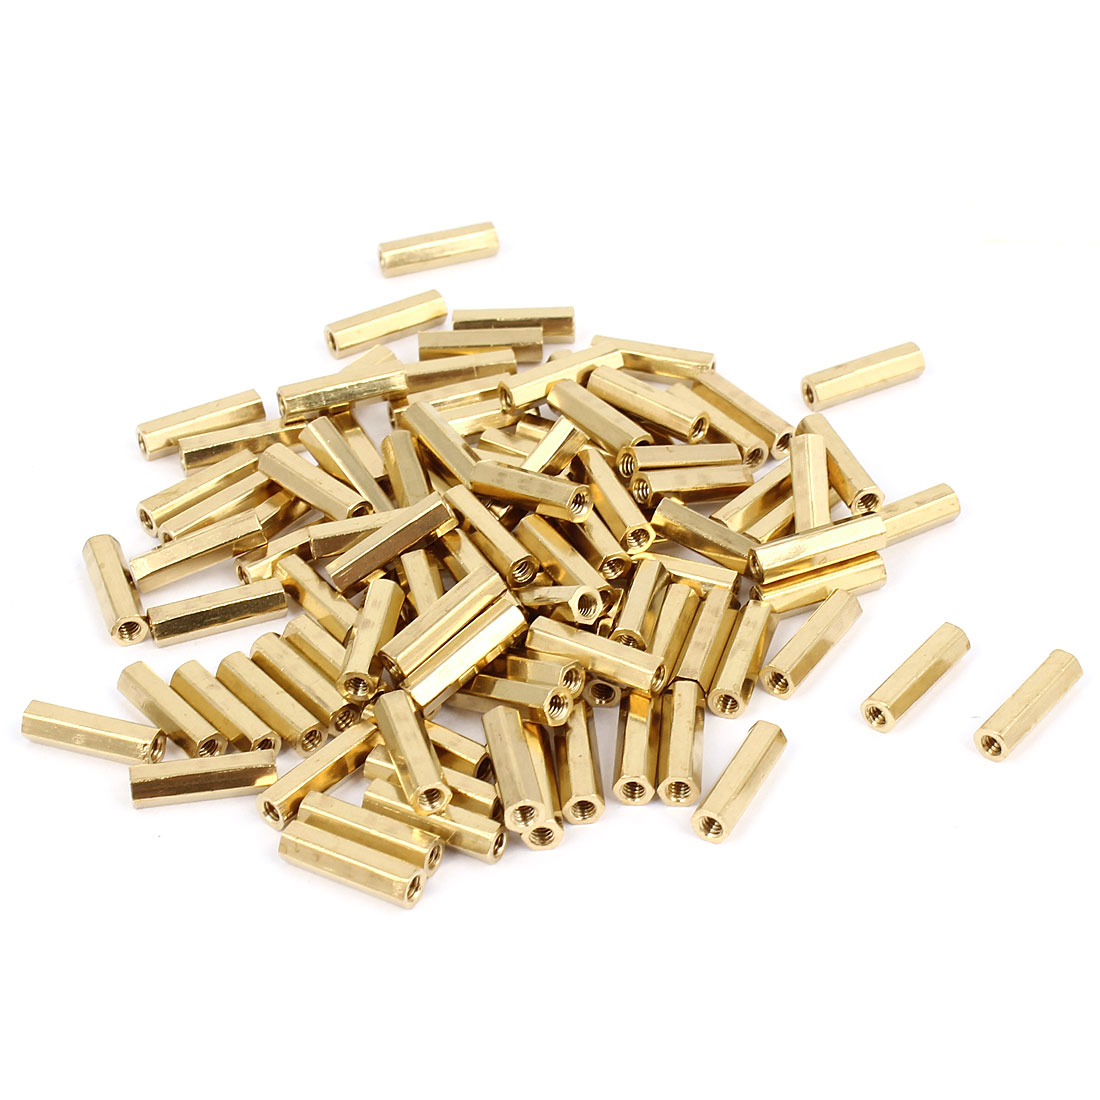 100 Pcs M2 Female Thread Brass Pillar Standoff Hexagonal Spacer 11mm Length